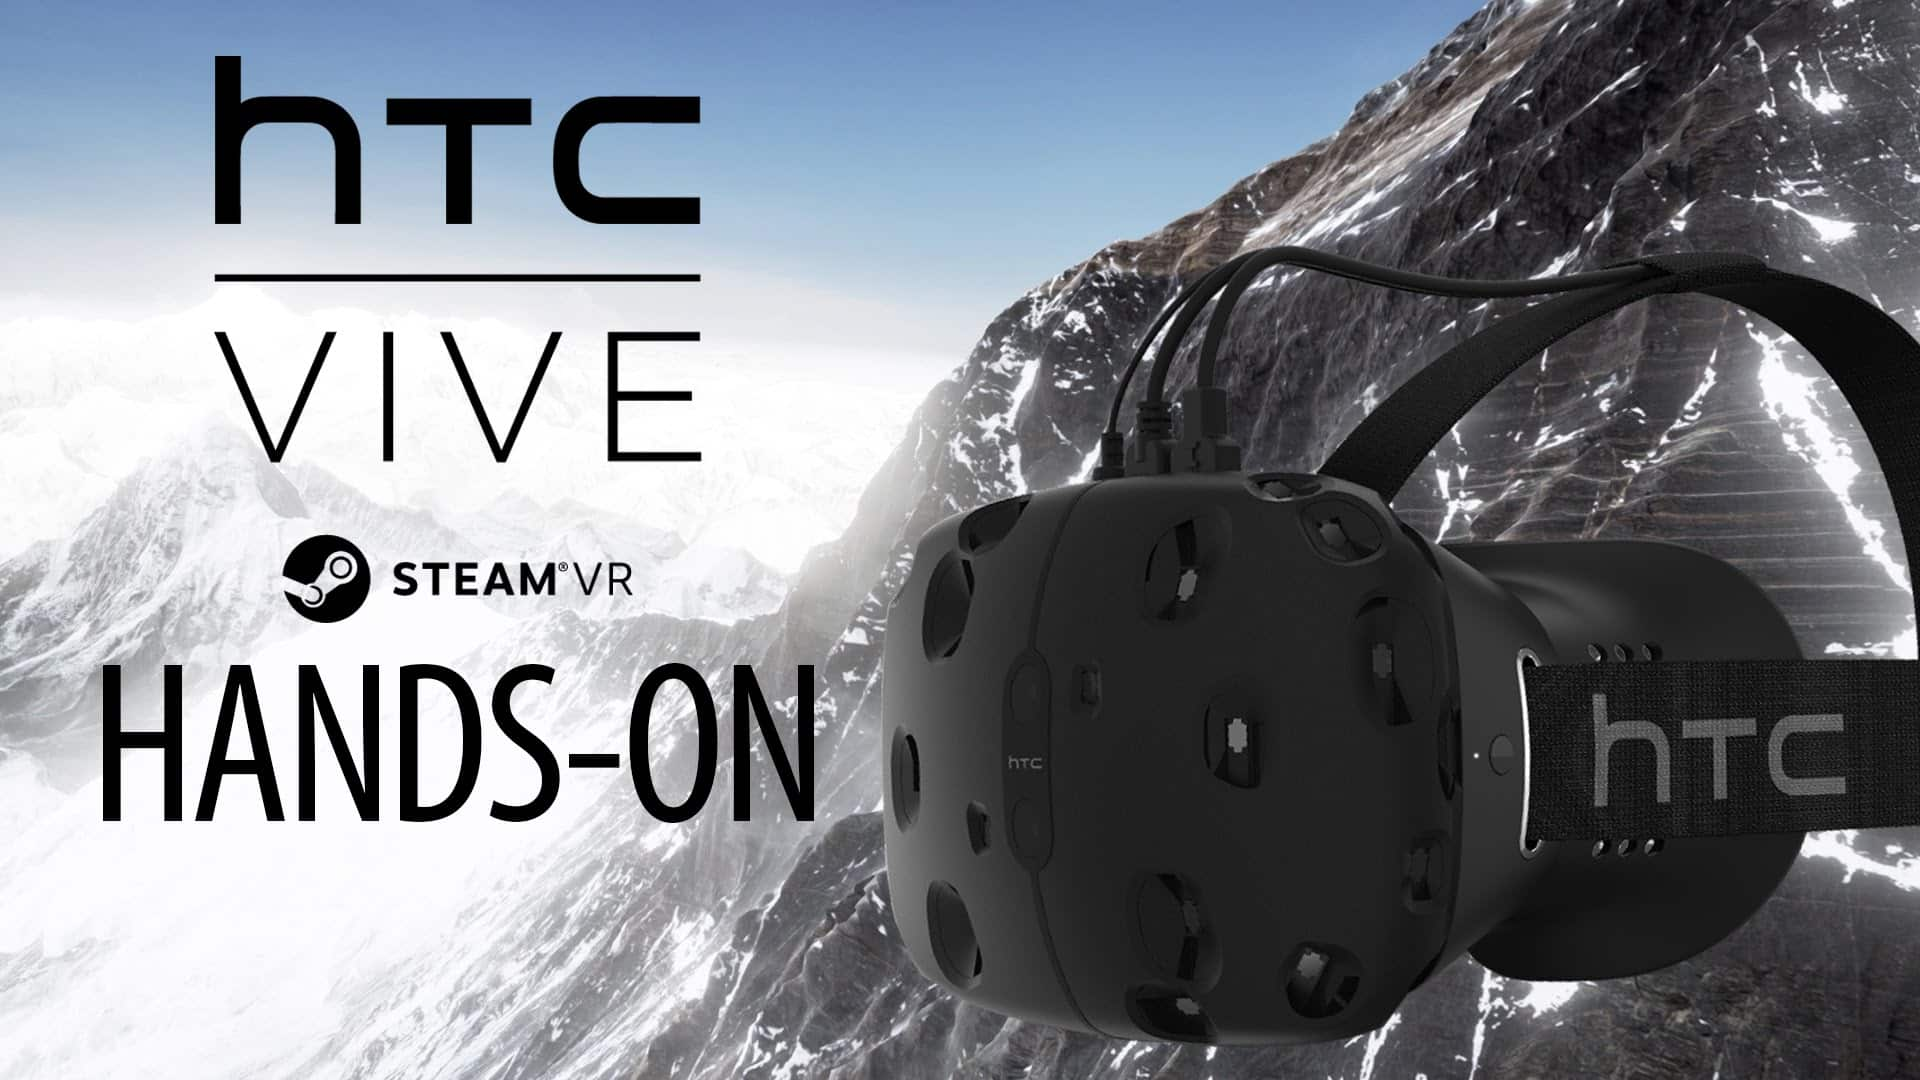 New Technology at CES 2016 - VR Everest